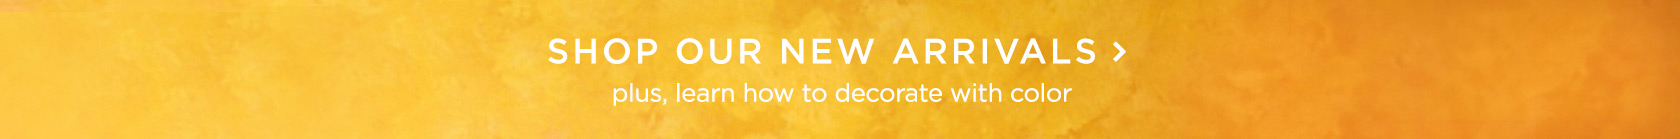 Shop Our New Arrivals! Plus Learn How To Decorate With Color